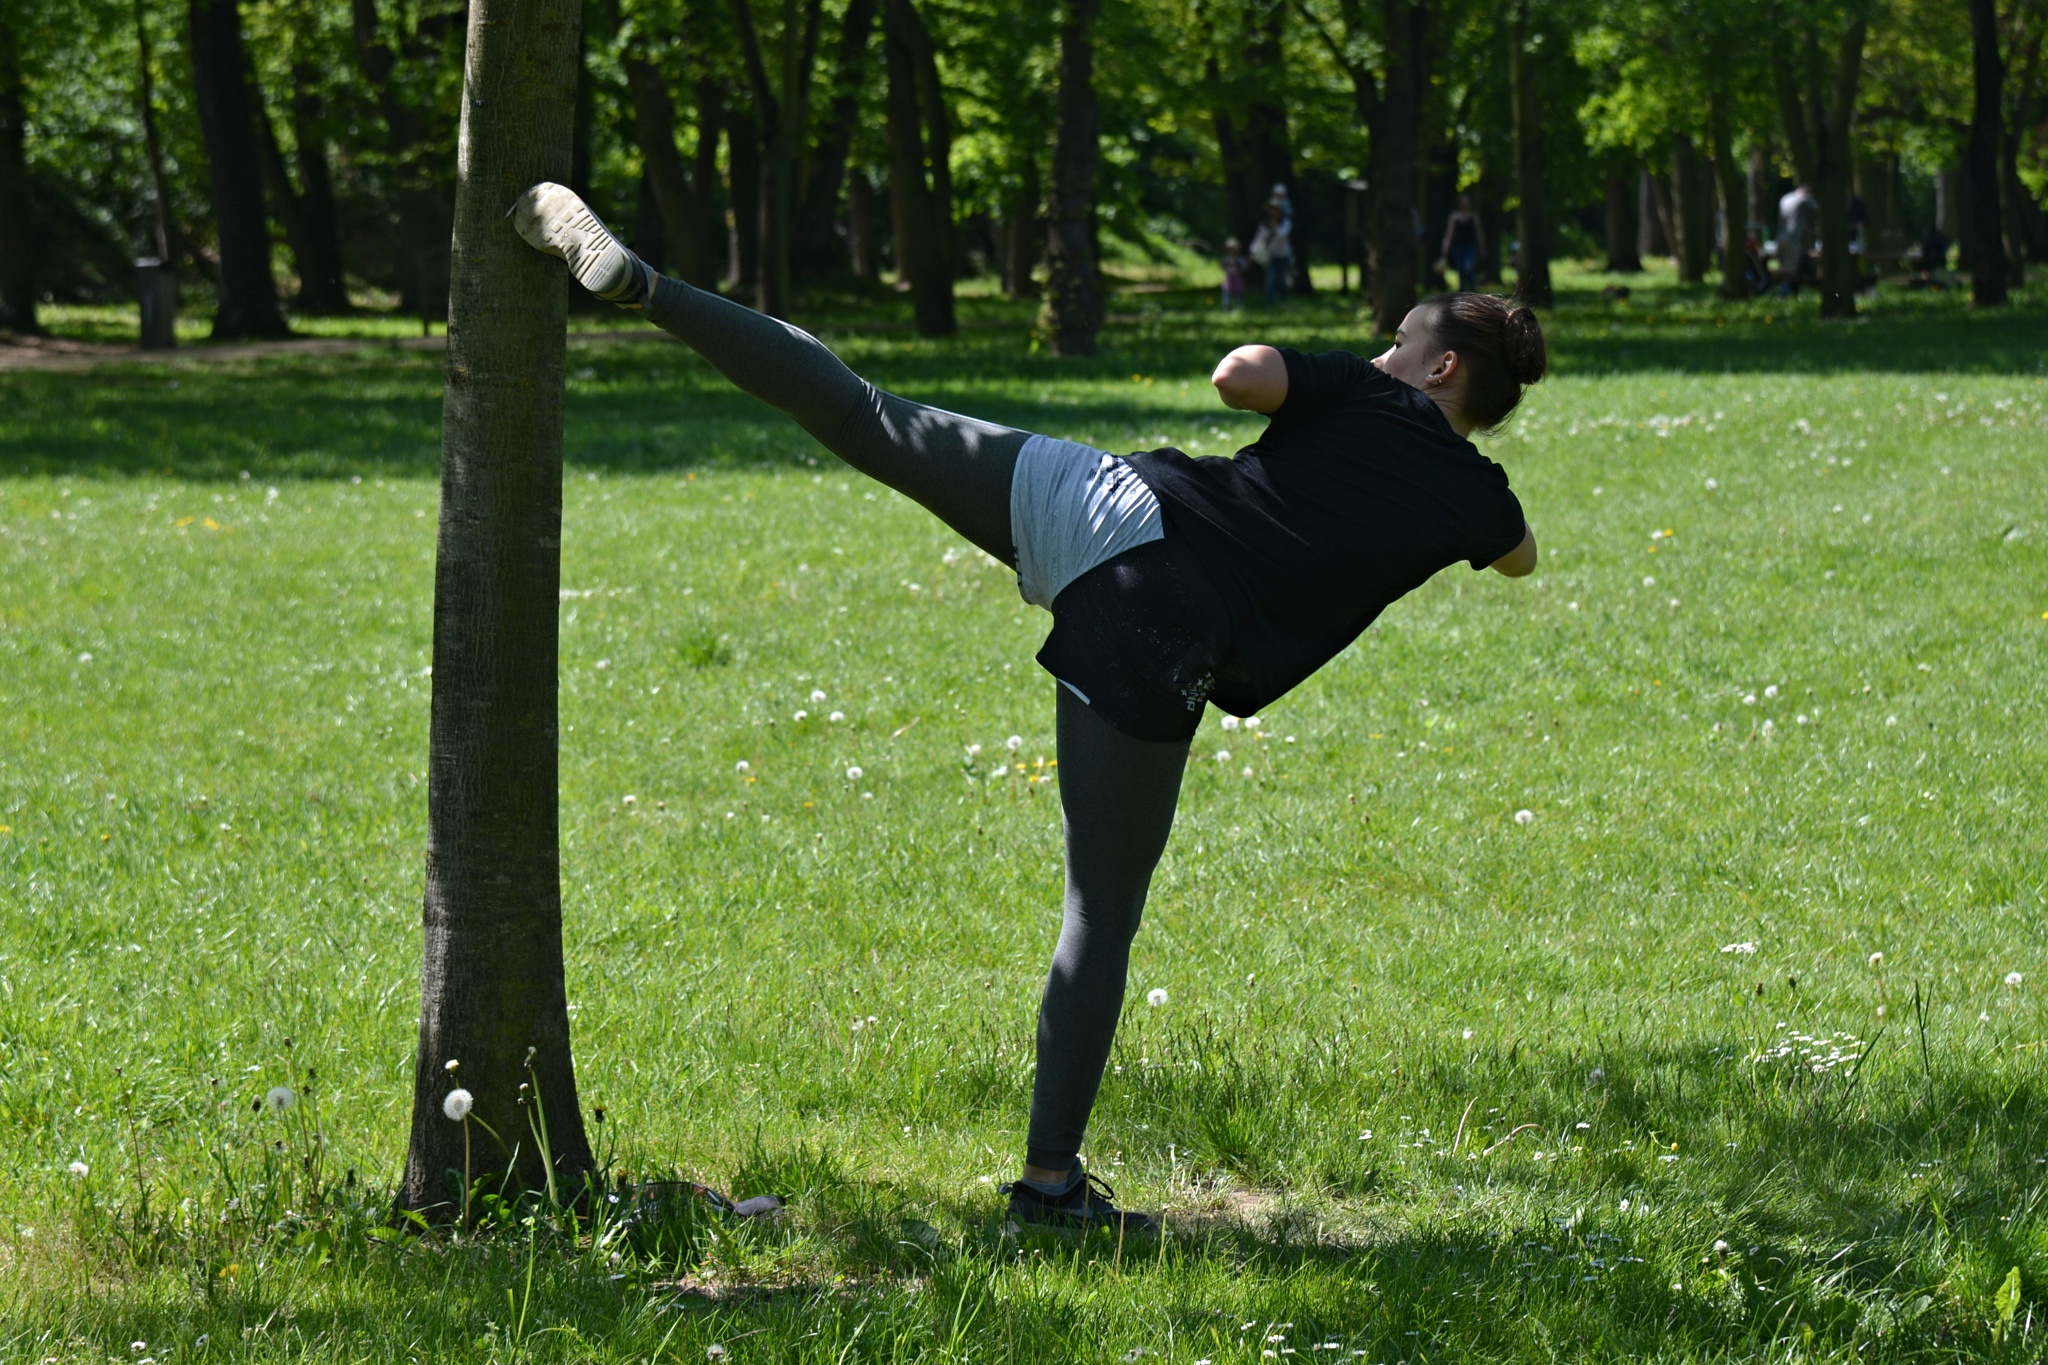 Kick-Box Training in Park. by marcel cintalan